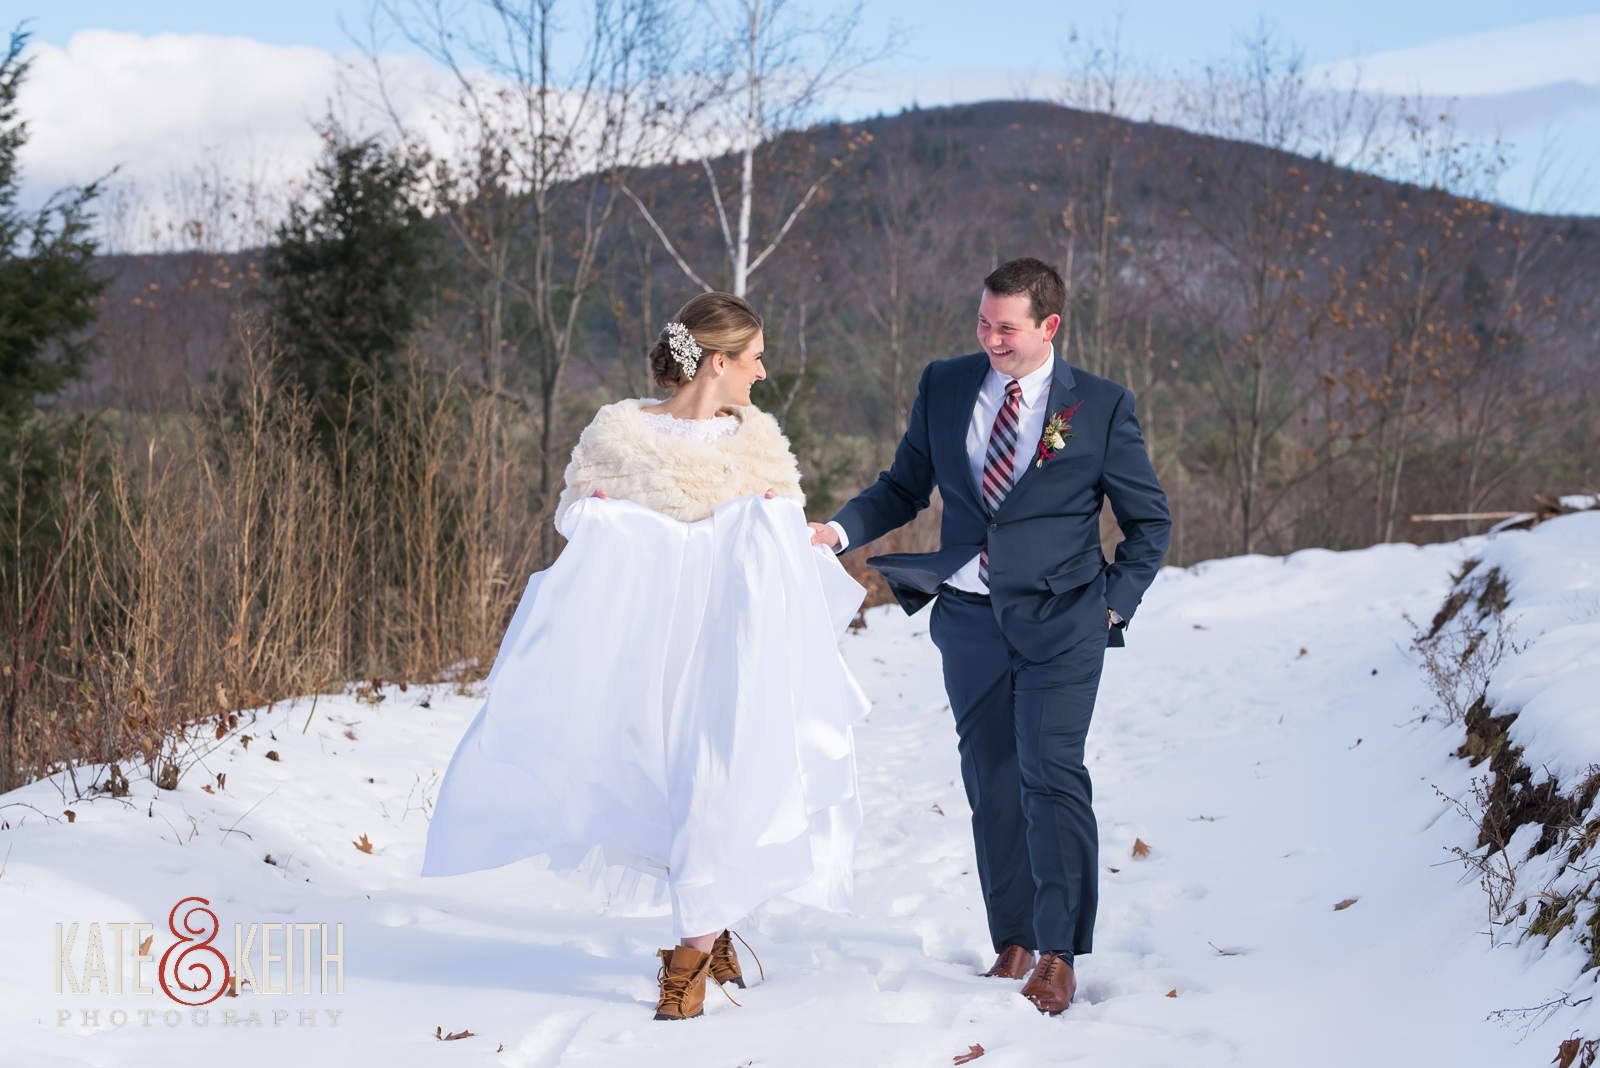 Barn on the Pemi, Boathouse Blooms florist, Your Dreams Bridal shop, Men's Warehouse, Joseph Abud, LL Bean boots, First look, wedding first look, snow, winter wedding, candid moment, adventure wedding, outdoor wedding, winter wedding dress, long sleeved winter wedding dress, cold weather wedding, bride and groom first look, wedding portraits, adventurous couple